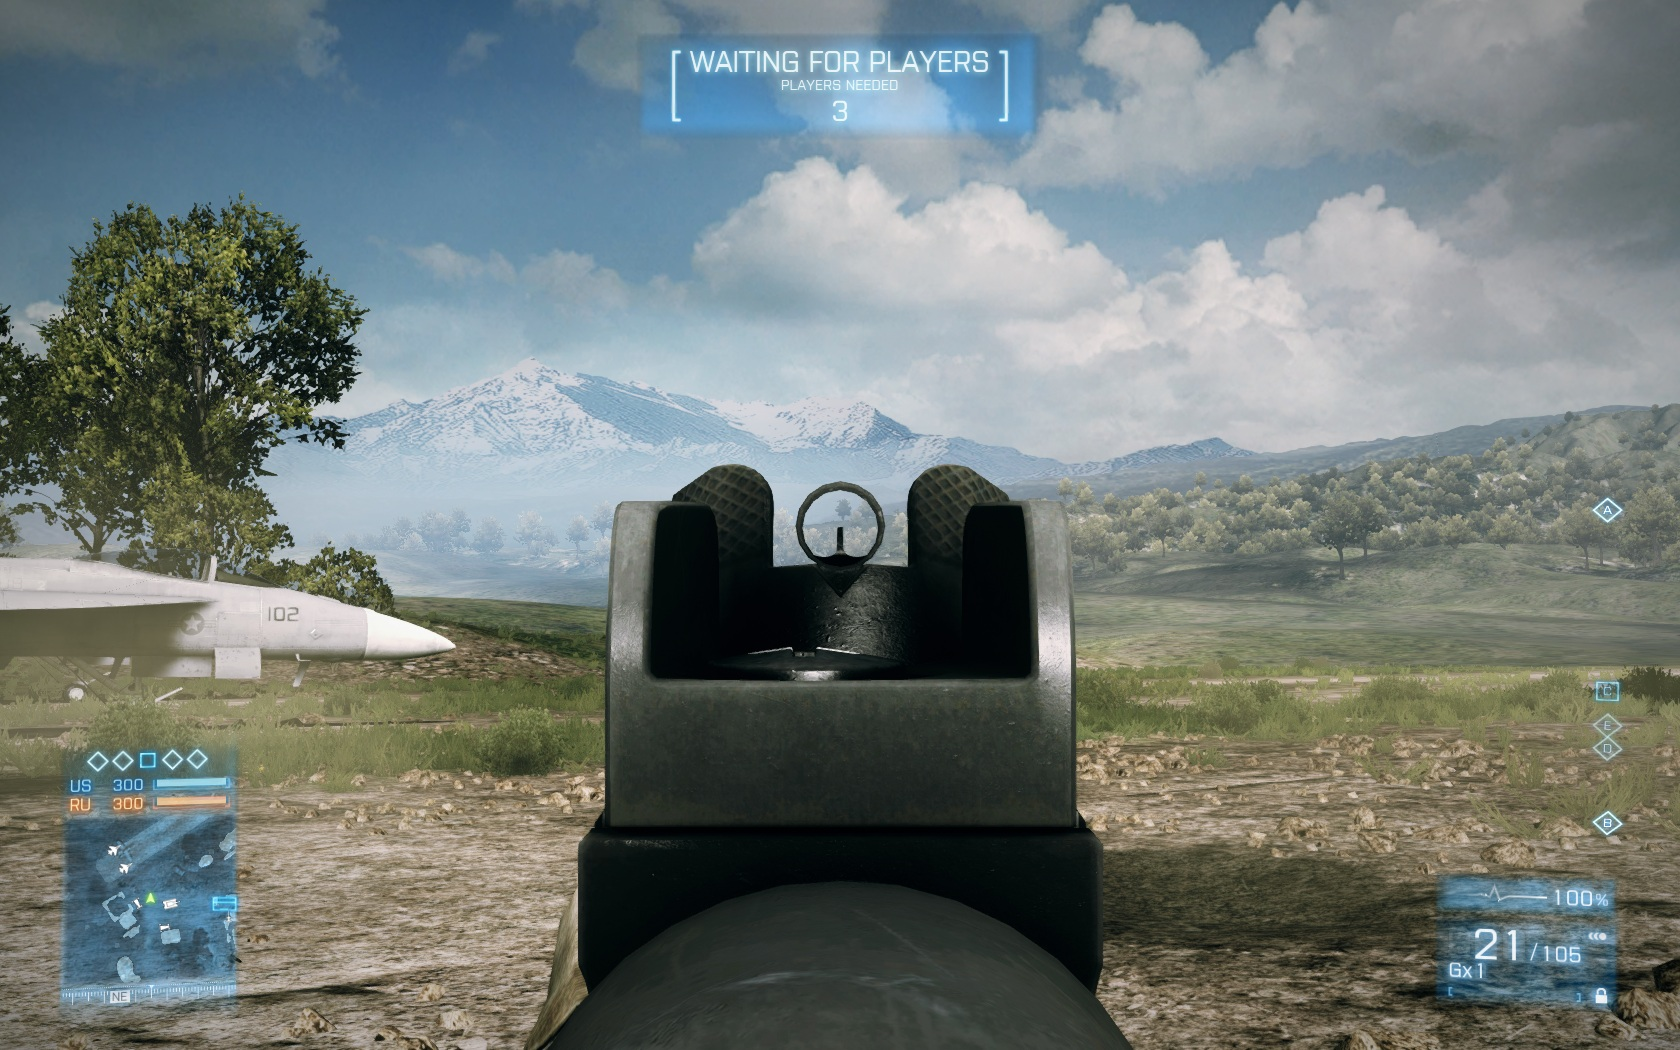 Image - BF3 G3A3 Iron Sight.jpg - 518.7KB